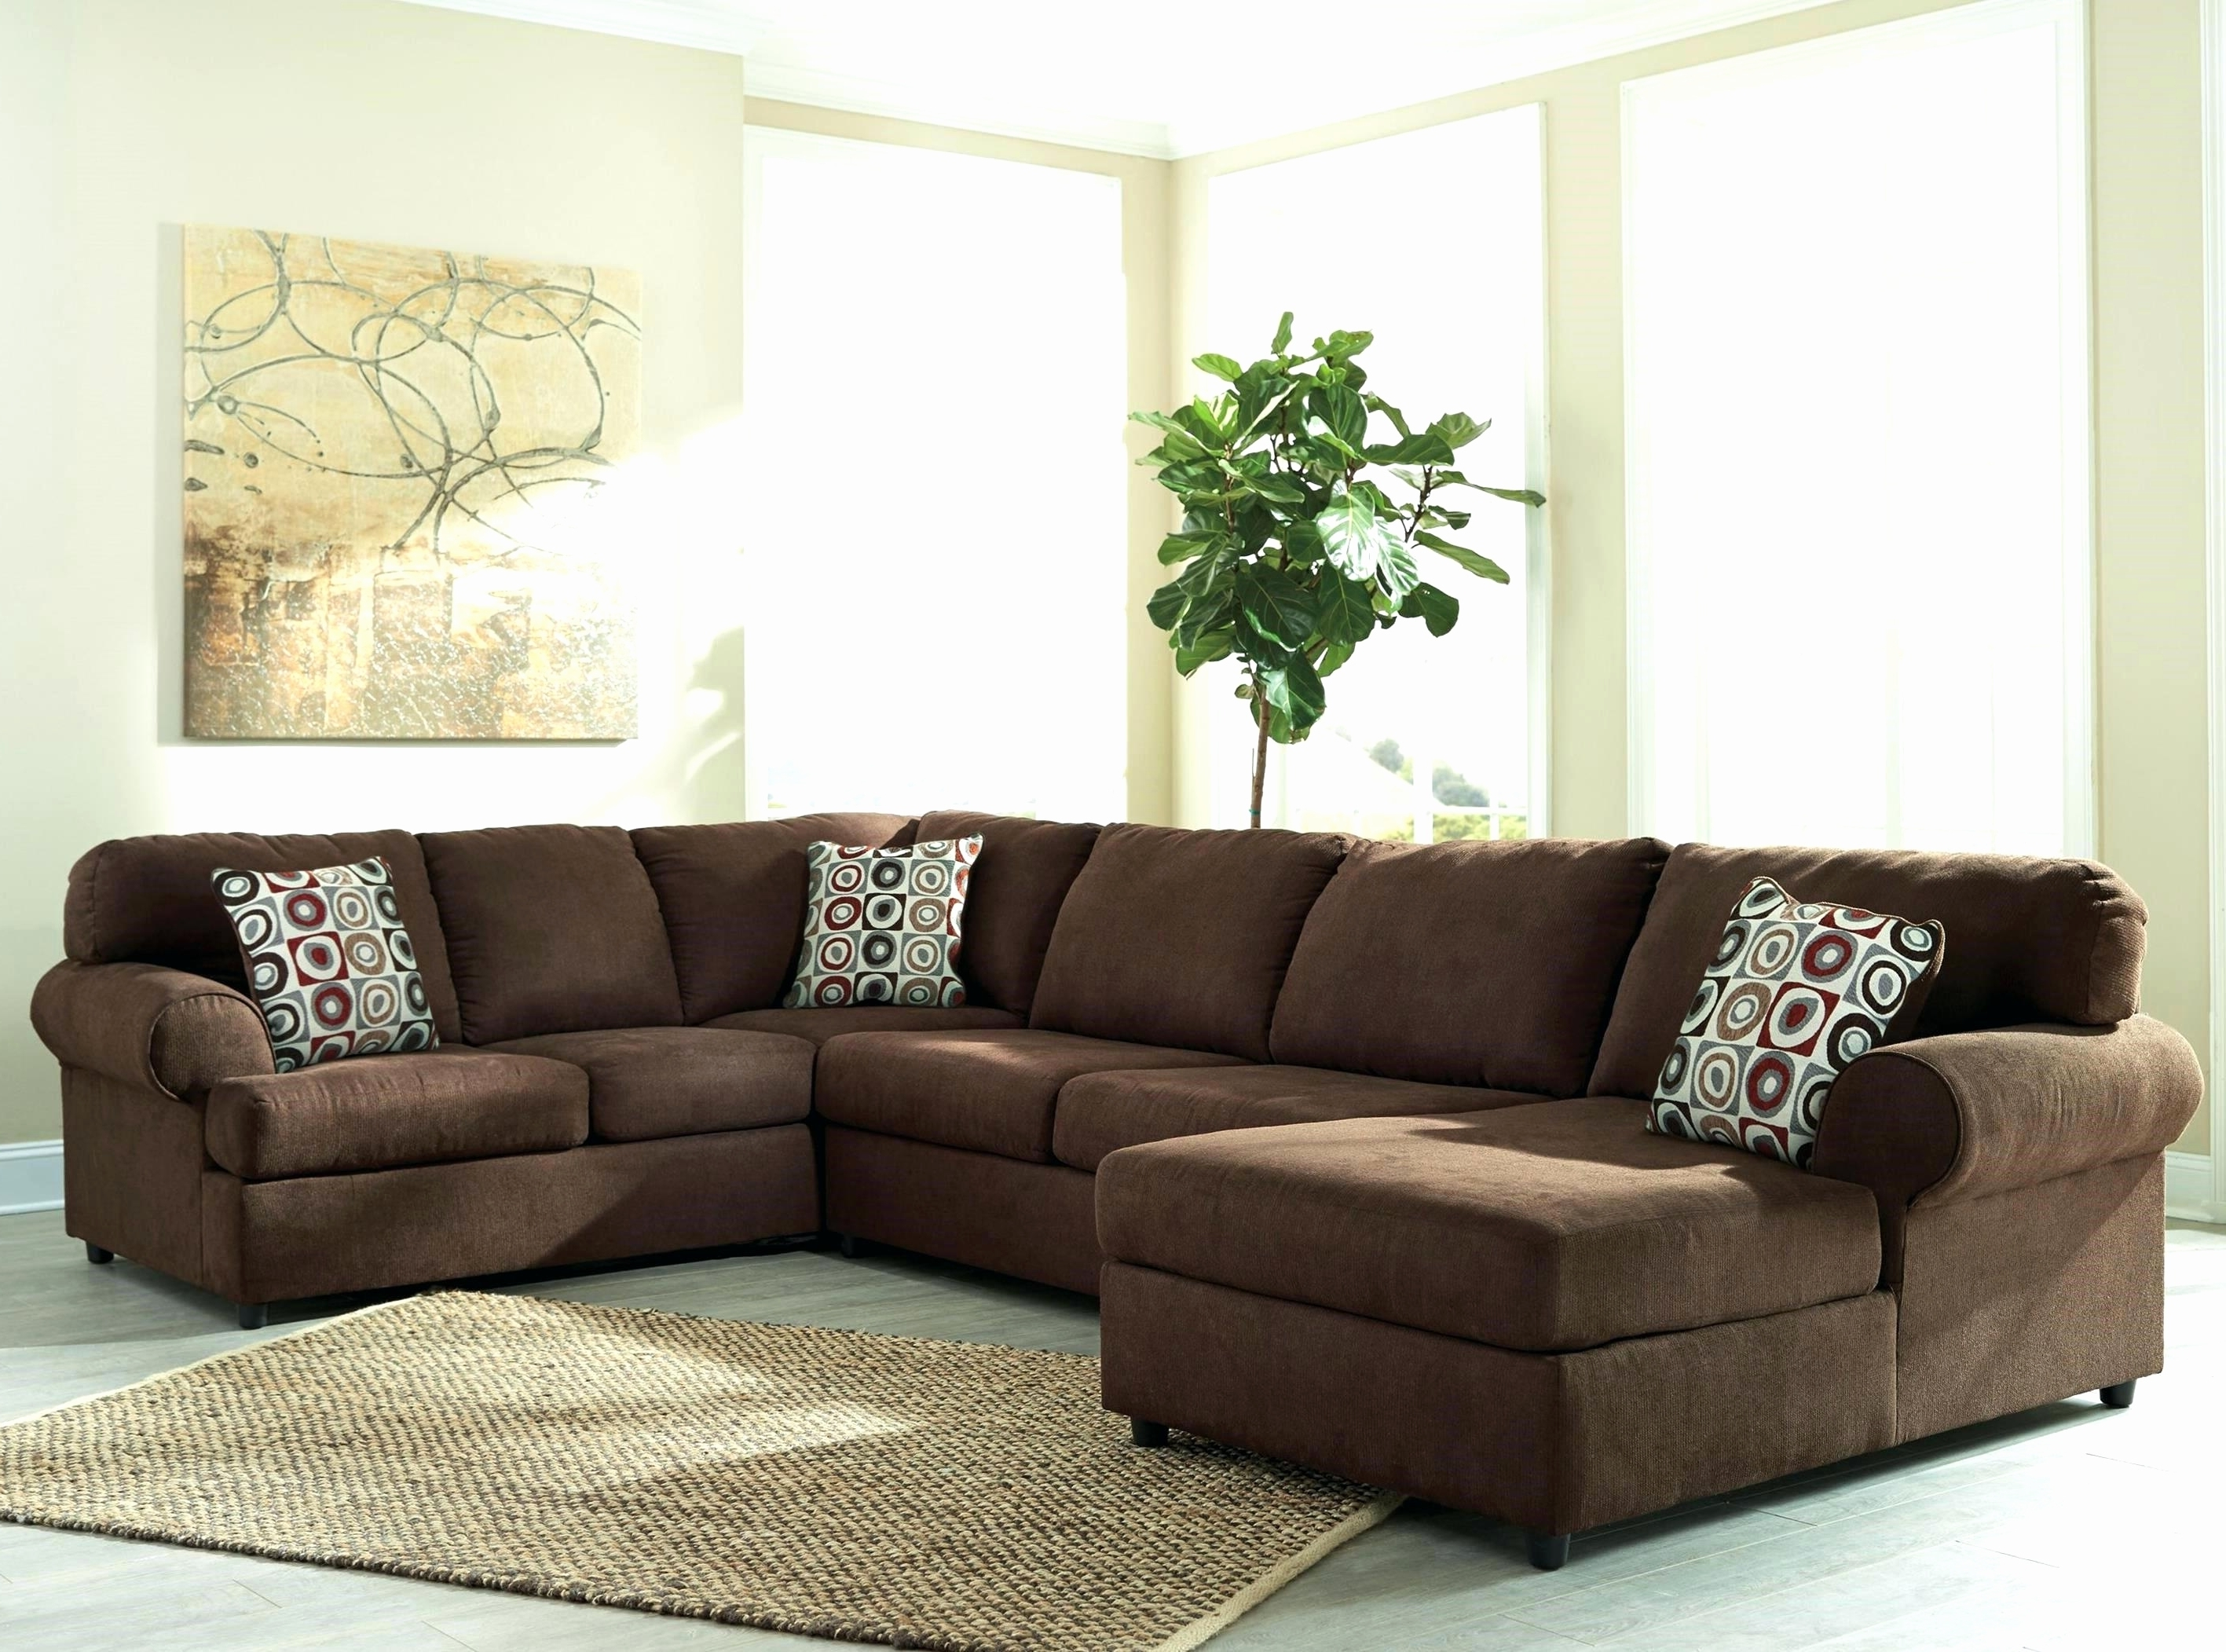 Unique Raymour And Flanigan Living Room 2018 – Couches And Sofas Ideas Within Newest Raymour And Flanigan Sectional Sofas (View 20 of 20)